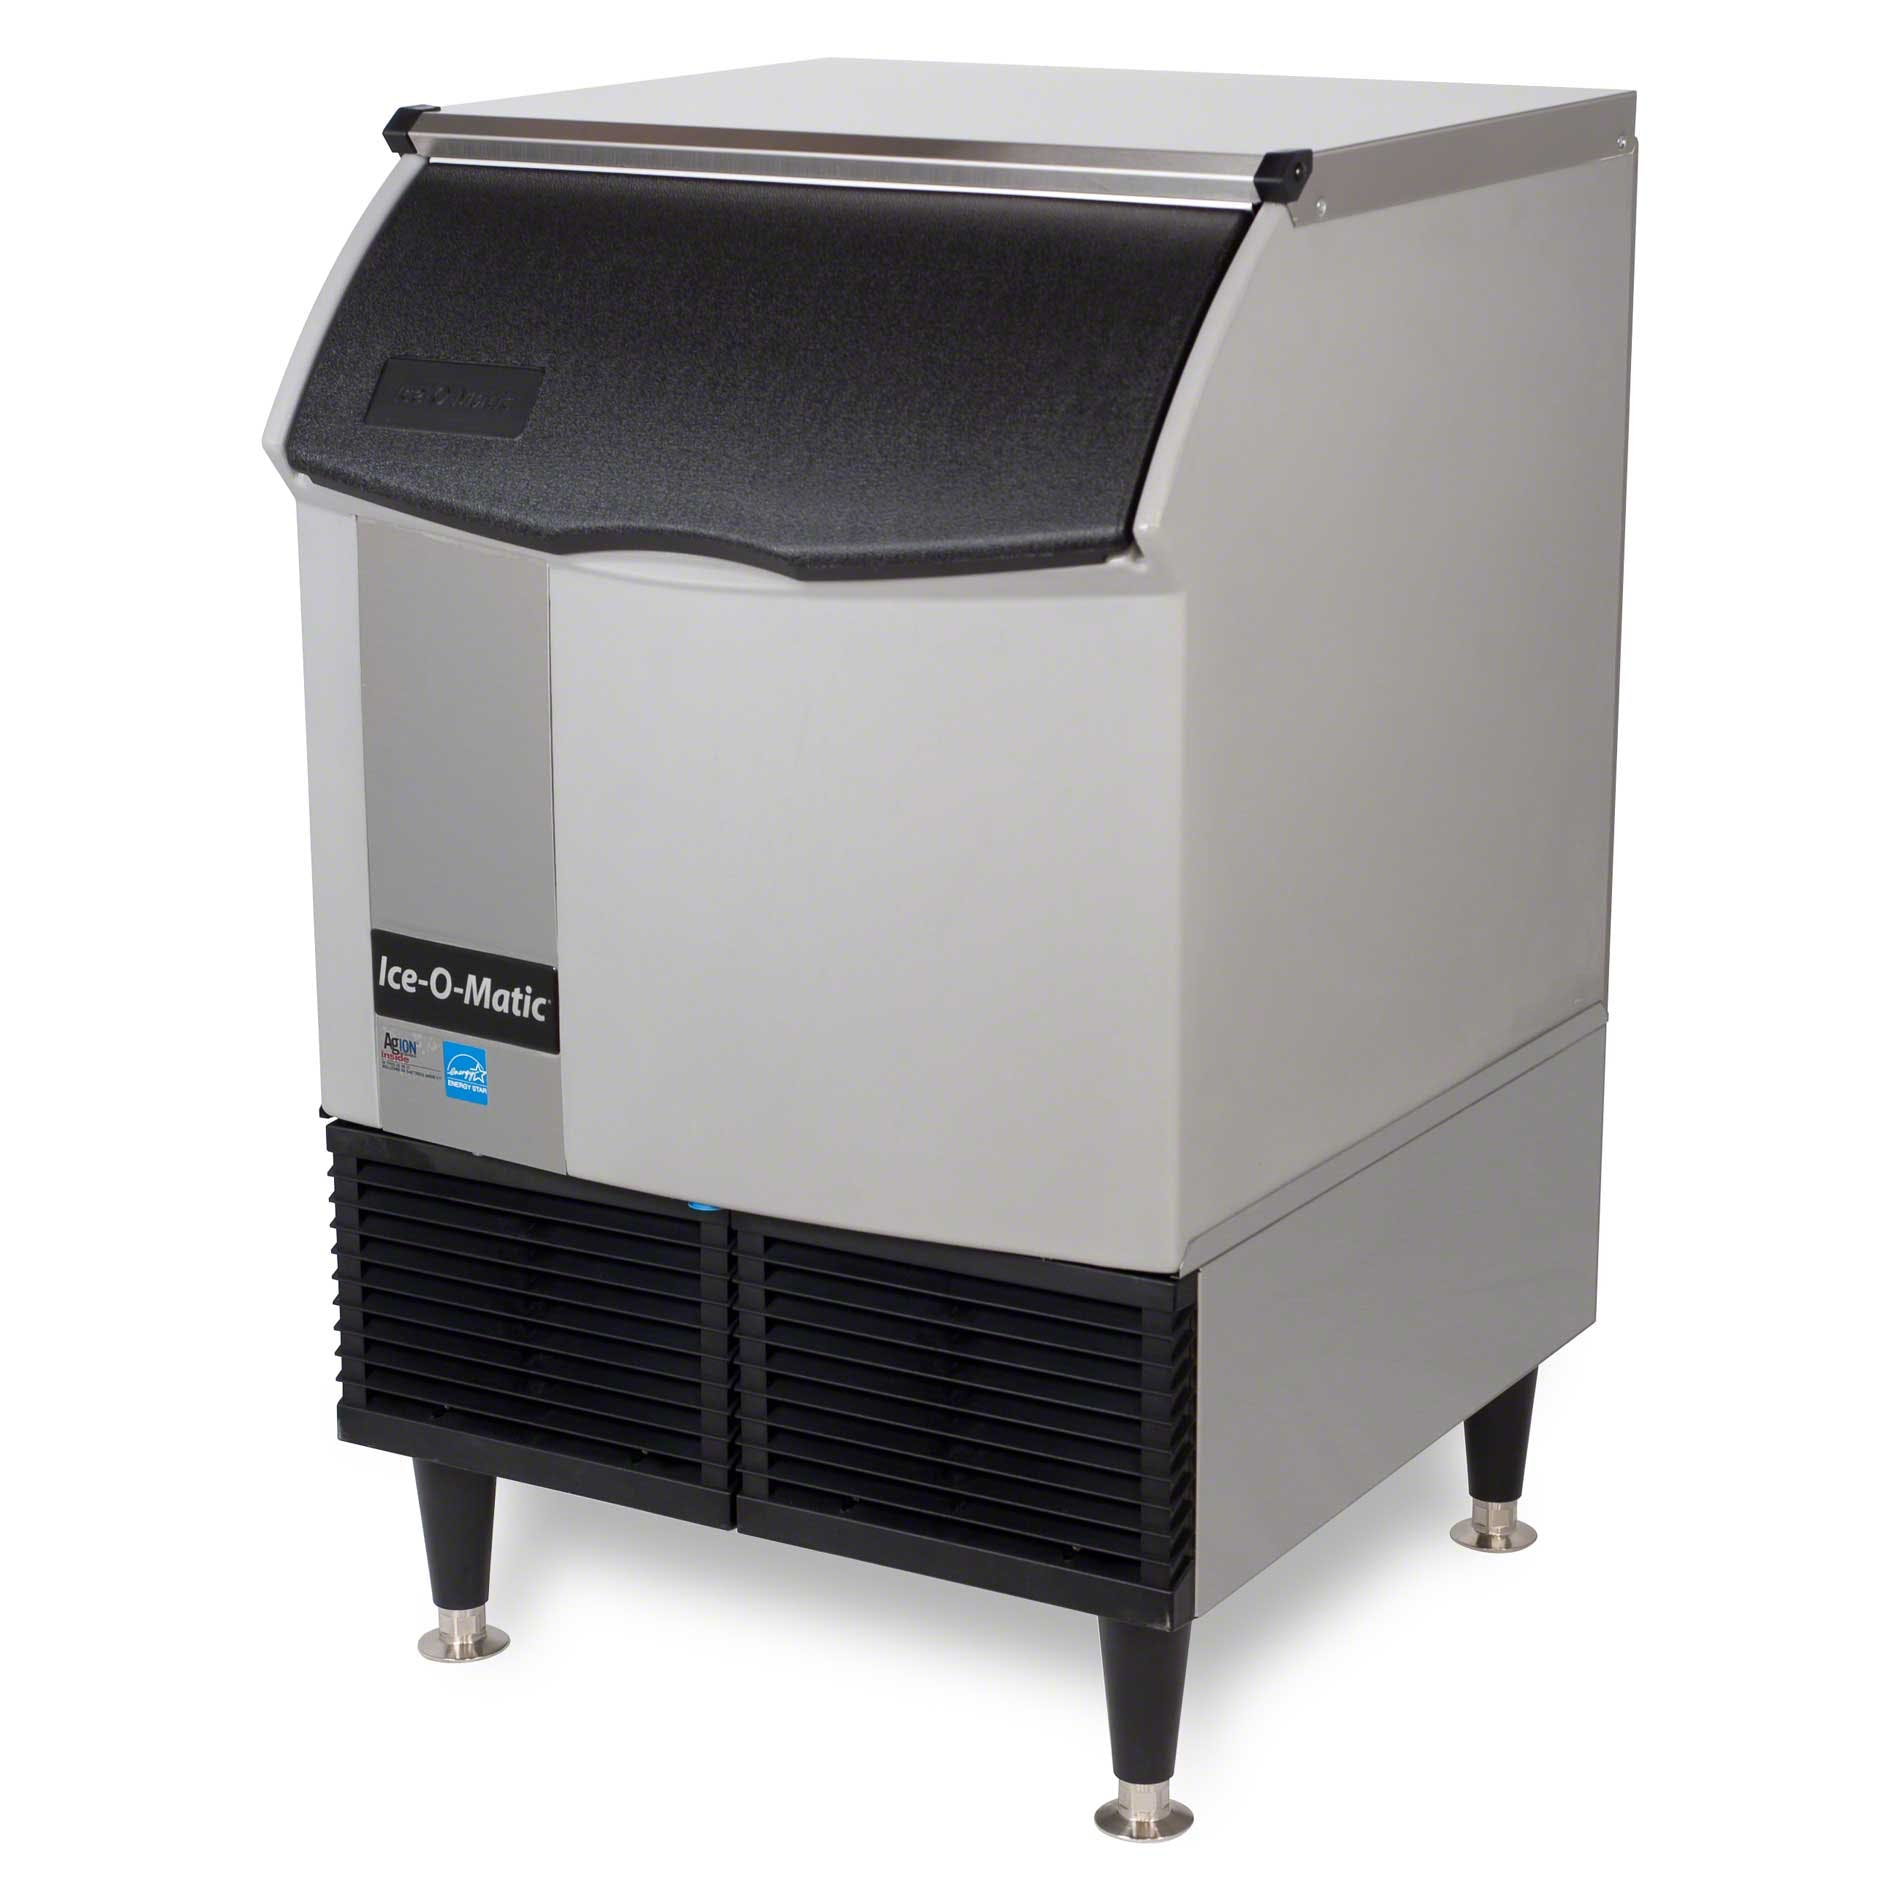 Ice-O-Matic - ICEU150HW 174 lb Self-Contained Half Cube Ice Machine Ice machine sold by Food Service Warehouse